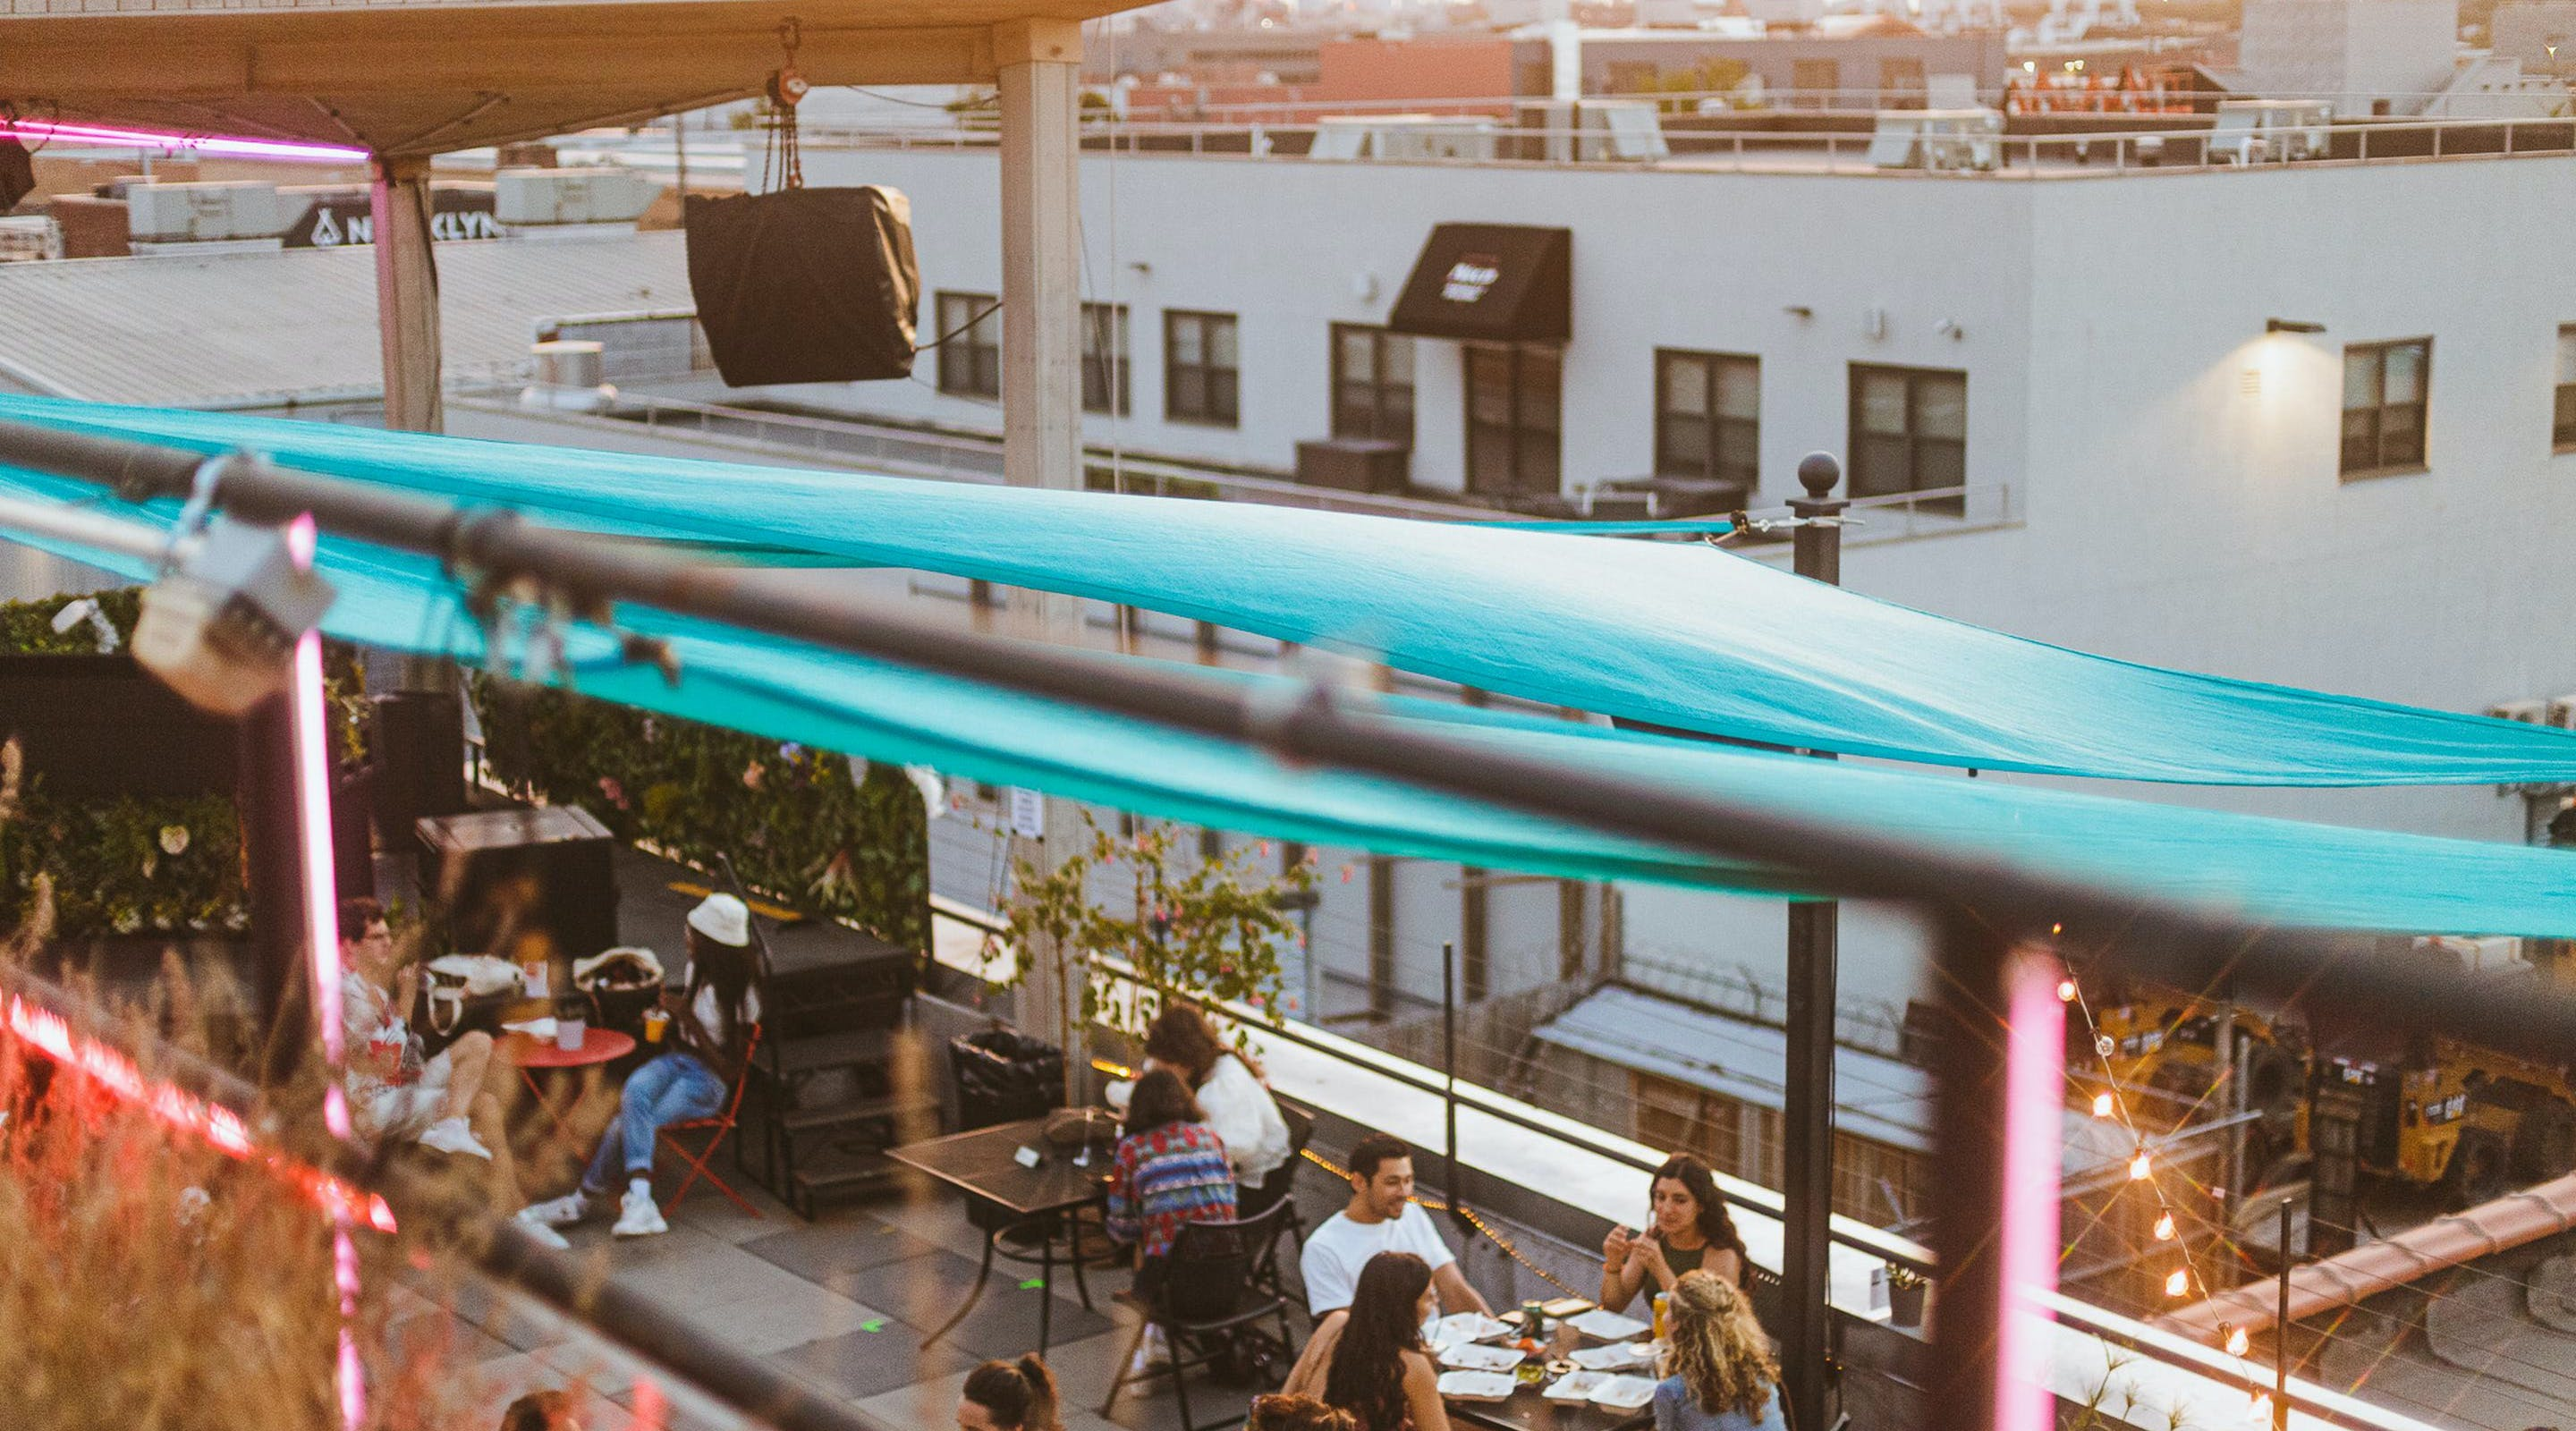 Several pairs and small groups of people sit, eat and drink at tables on the rooftop terrace